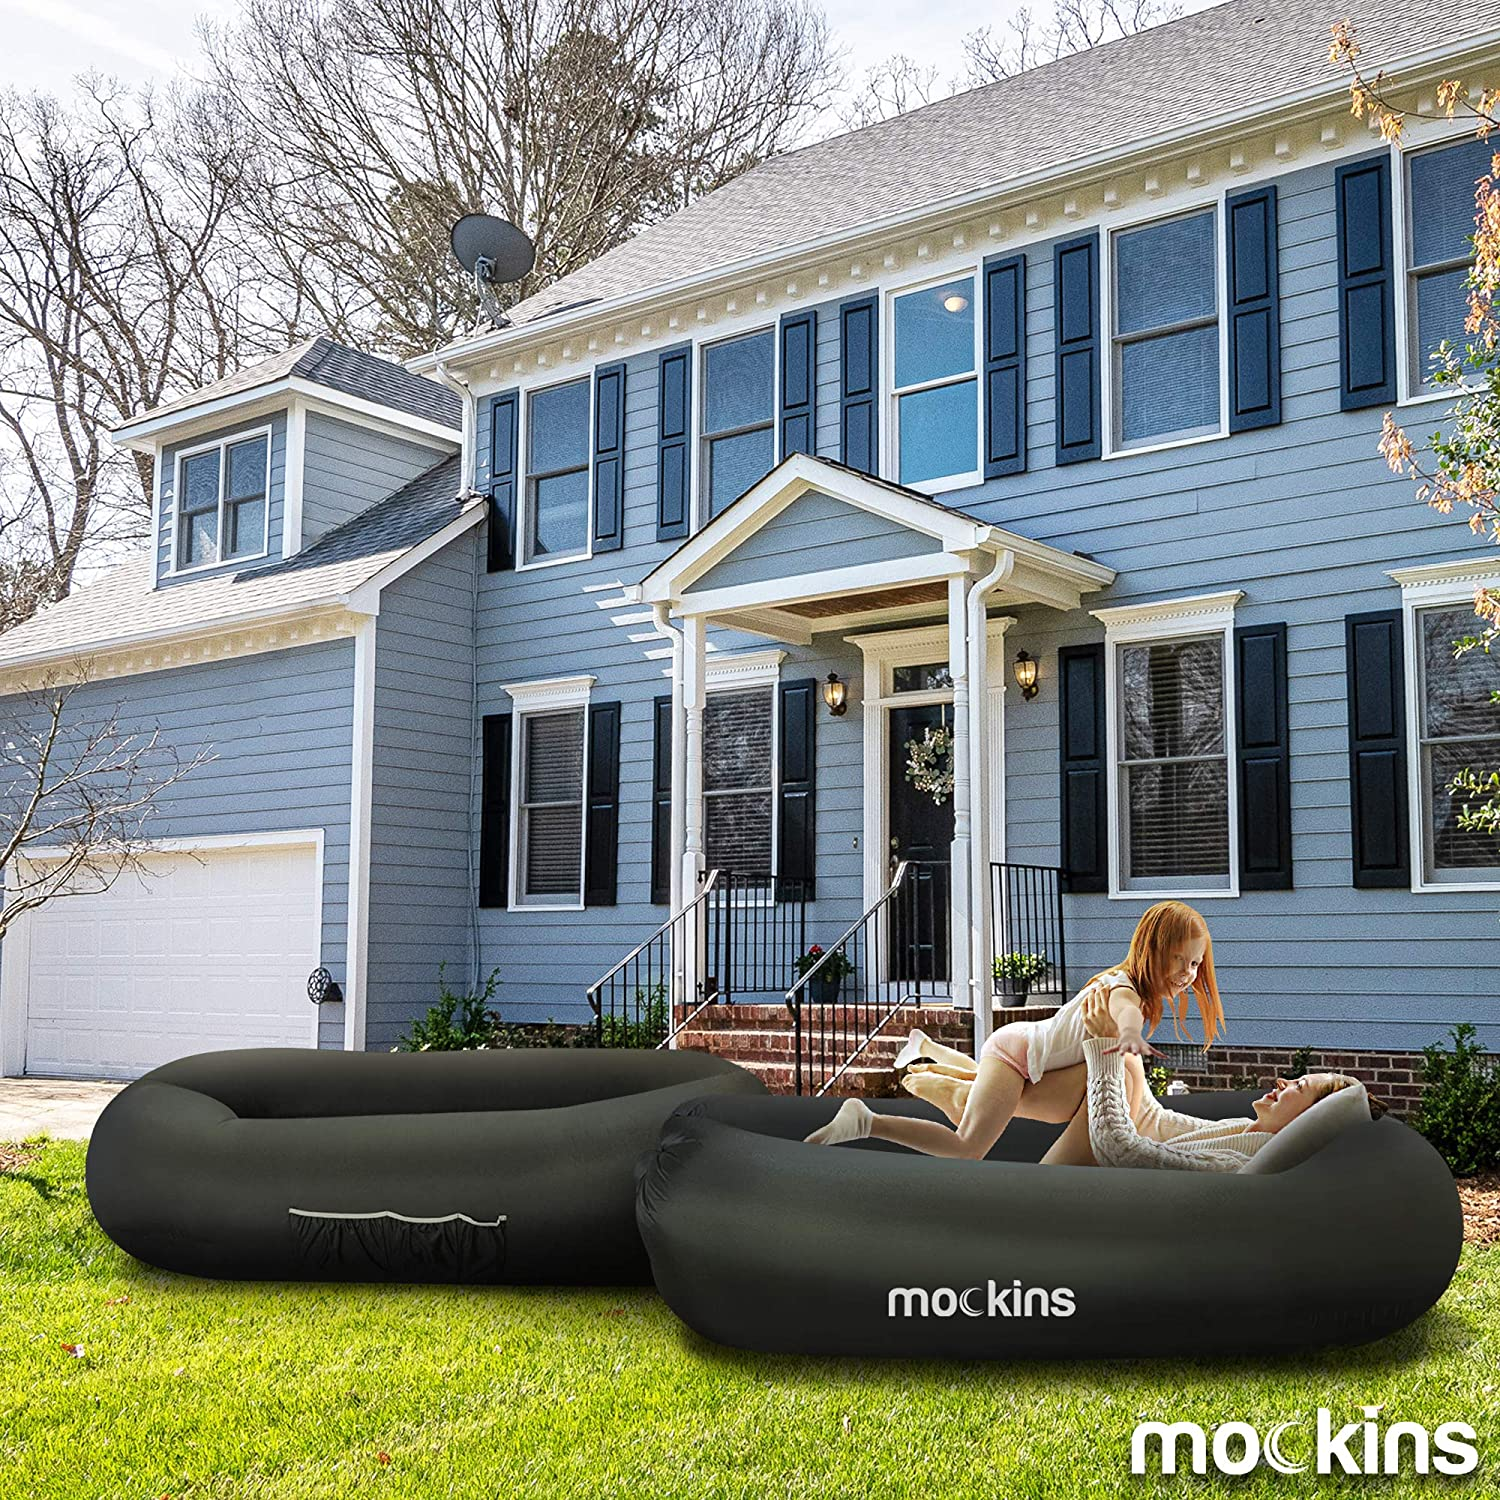 Mockins Portable Compact Inflatable Lounger, Travel Bag Pouch - Black (MMINFBLK36)